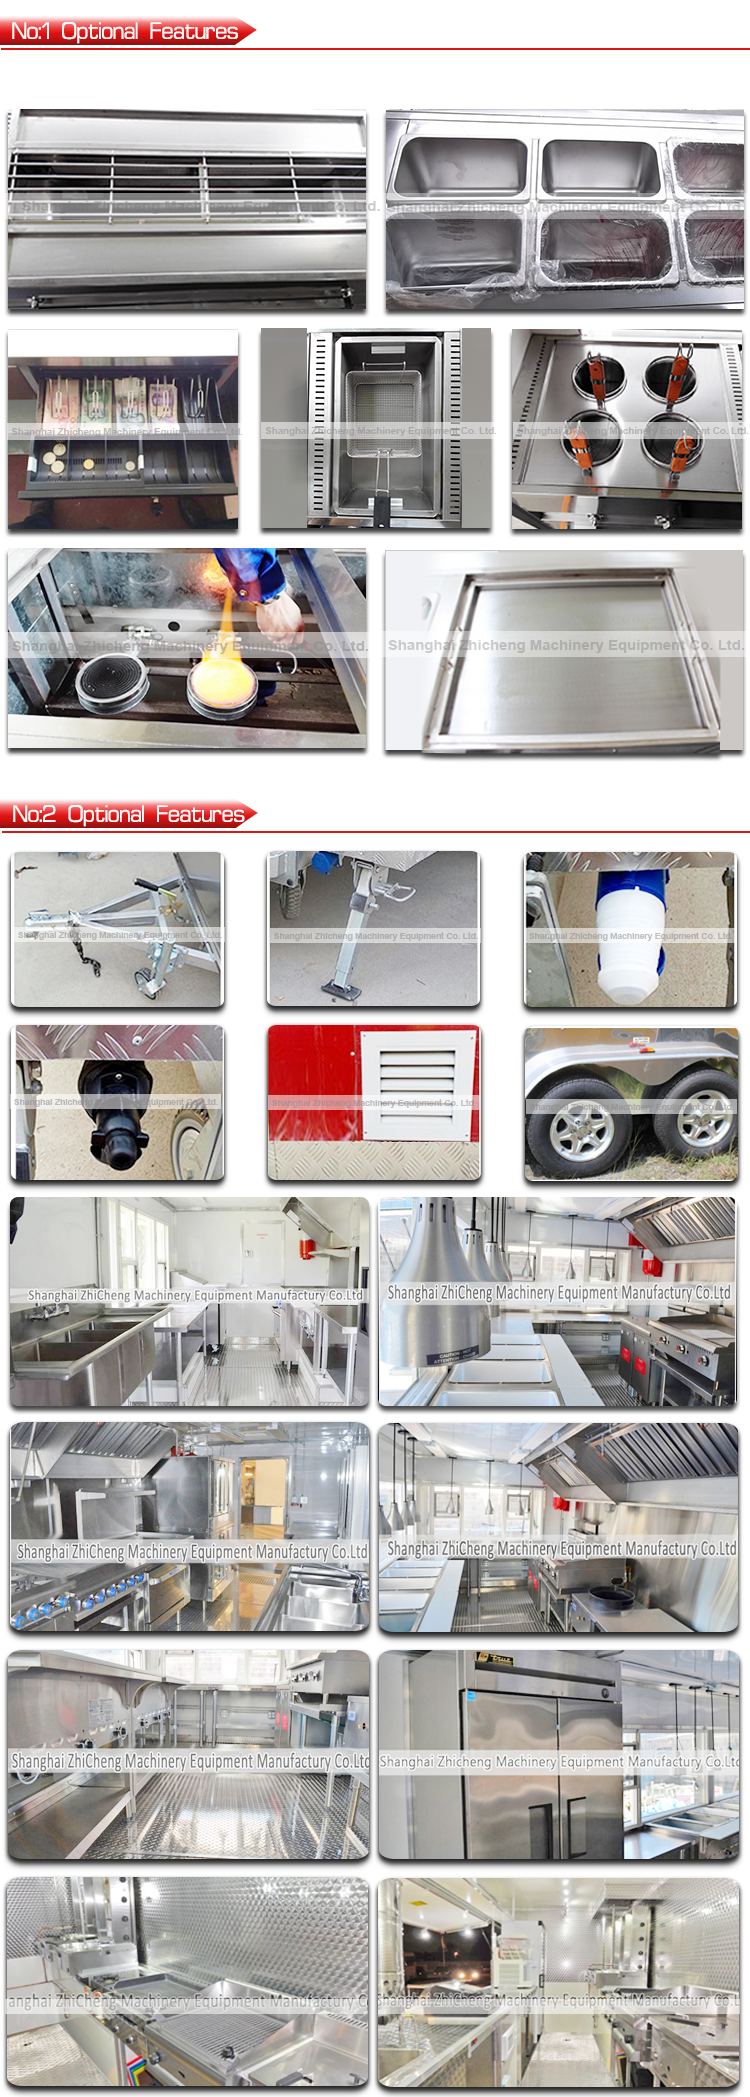 stainles steel mobile food trailer /customized food cart for making and selling food all over the world